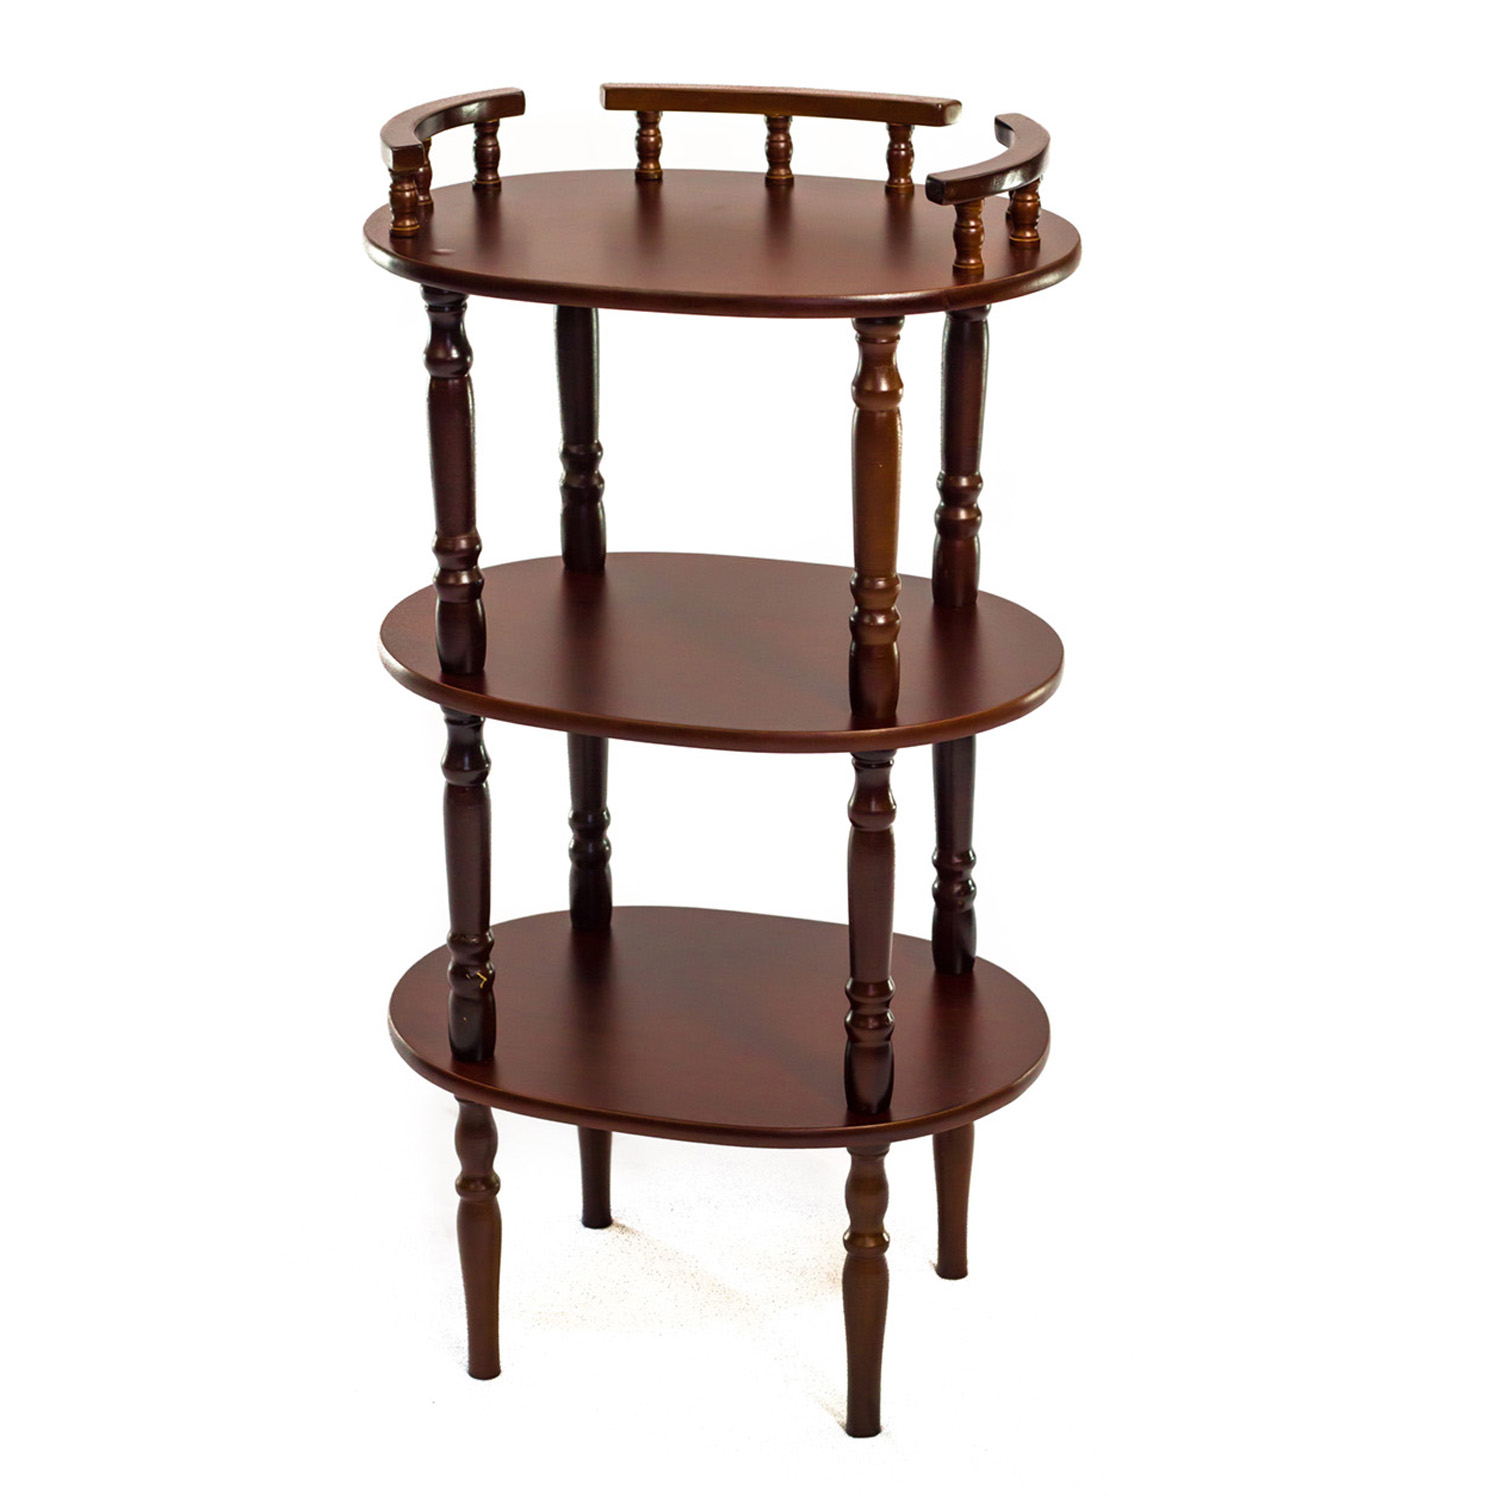 Home Source Mahogany Telephone Stand with Shelves